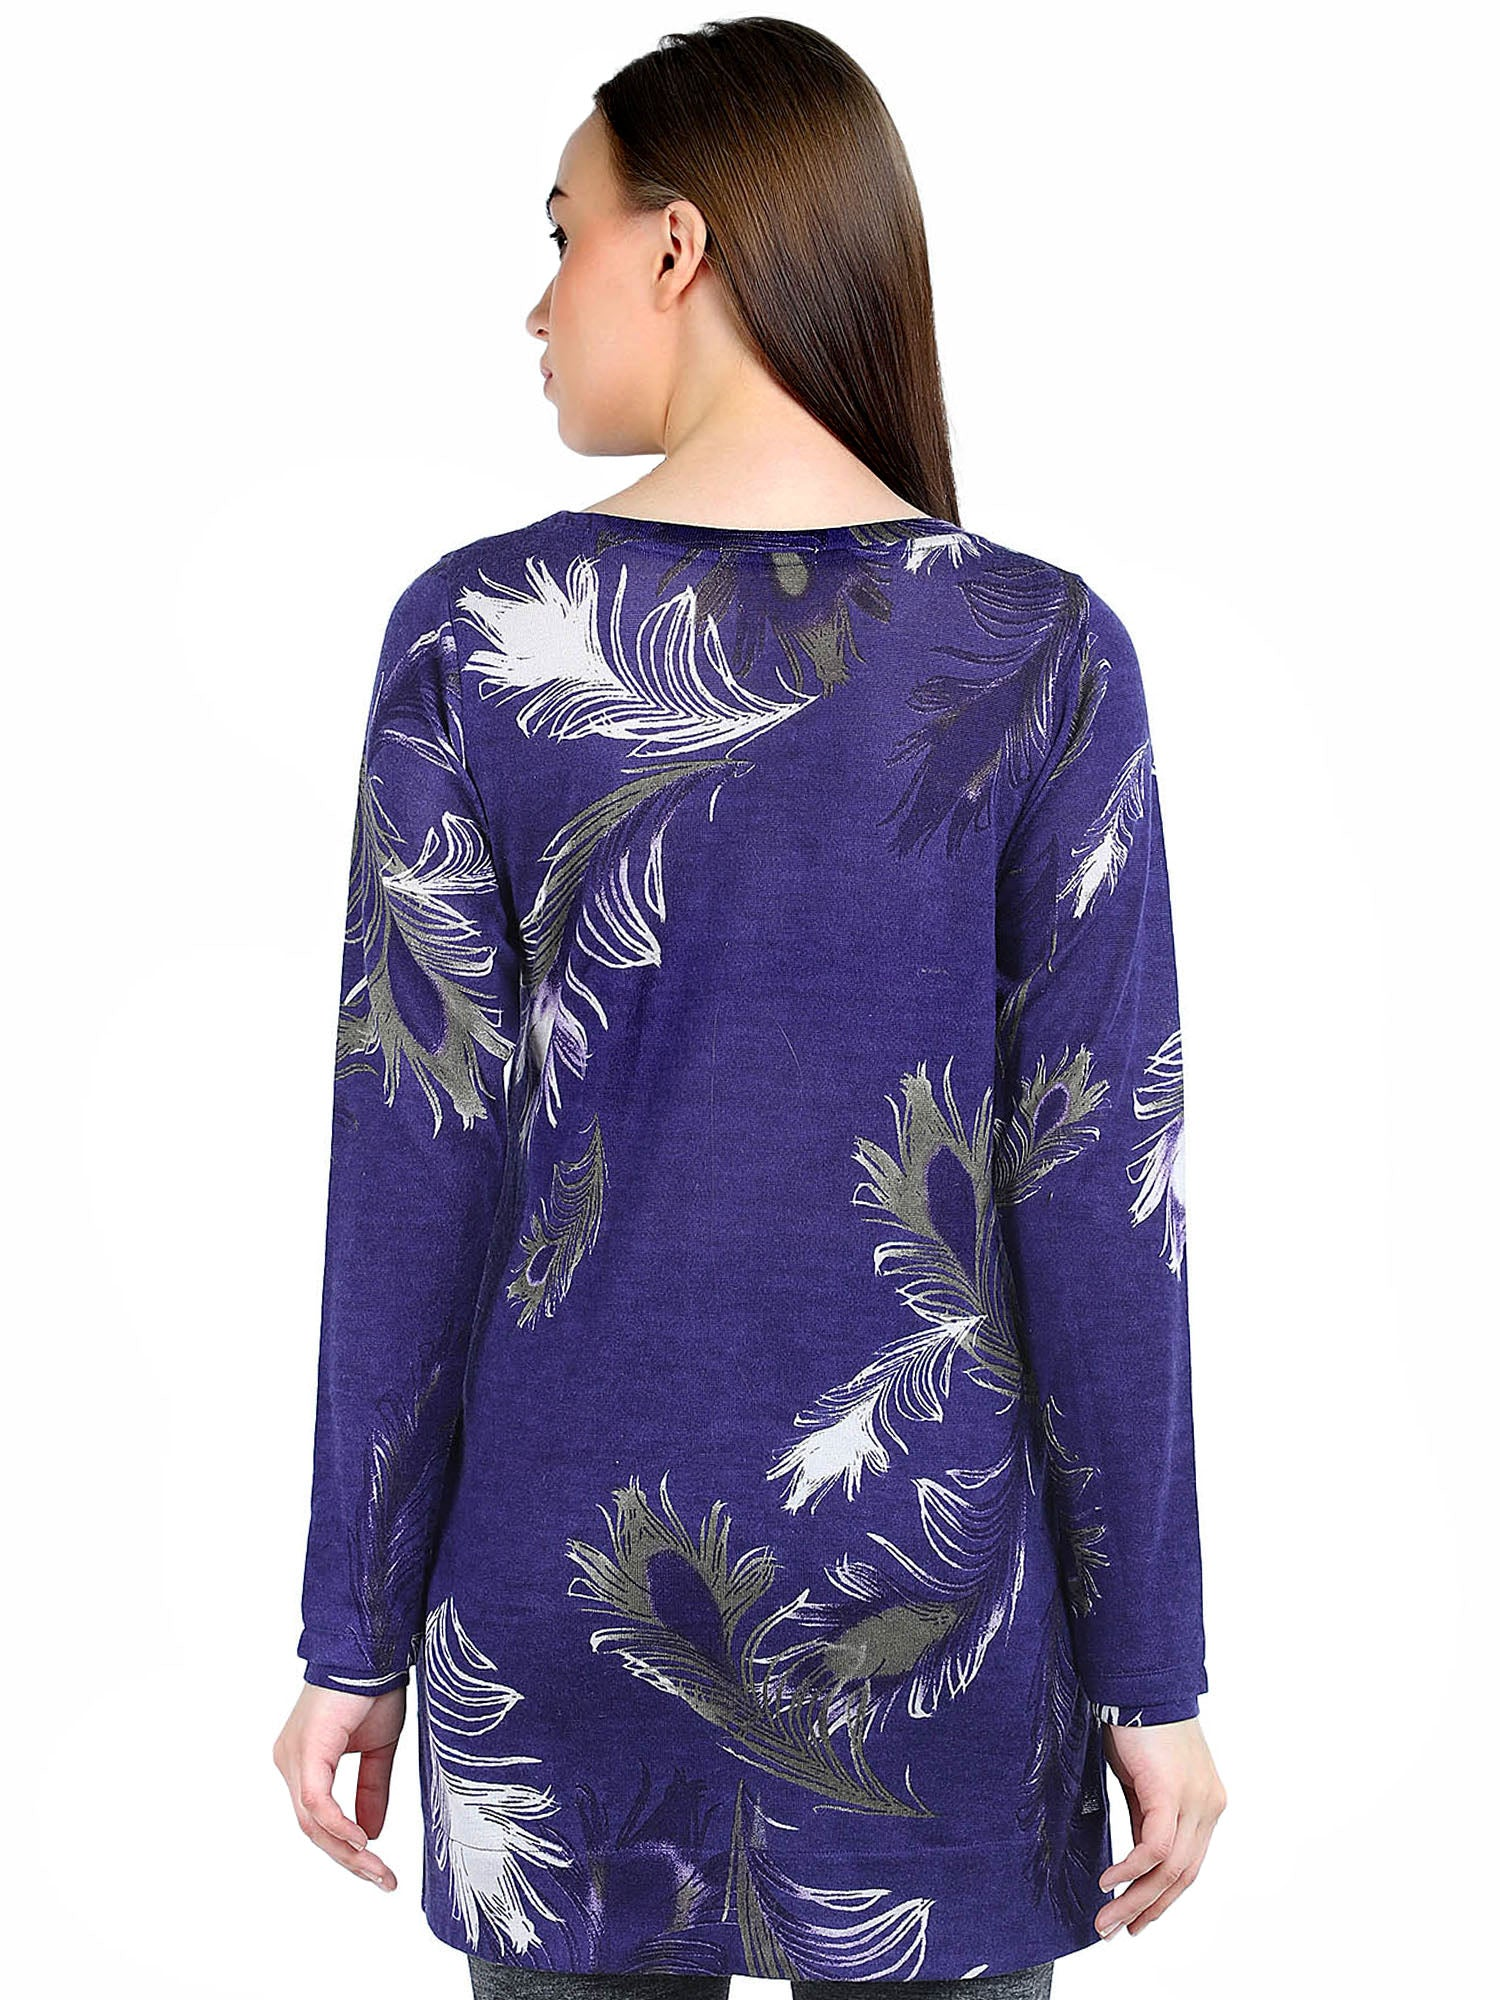 Pashma Blue Silk Wool Cashmere Boat Neck Tee with leaf print